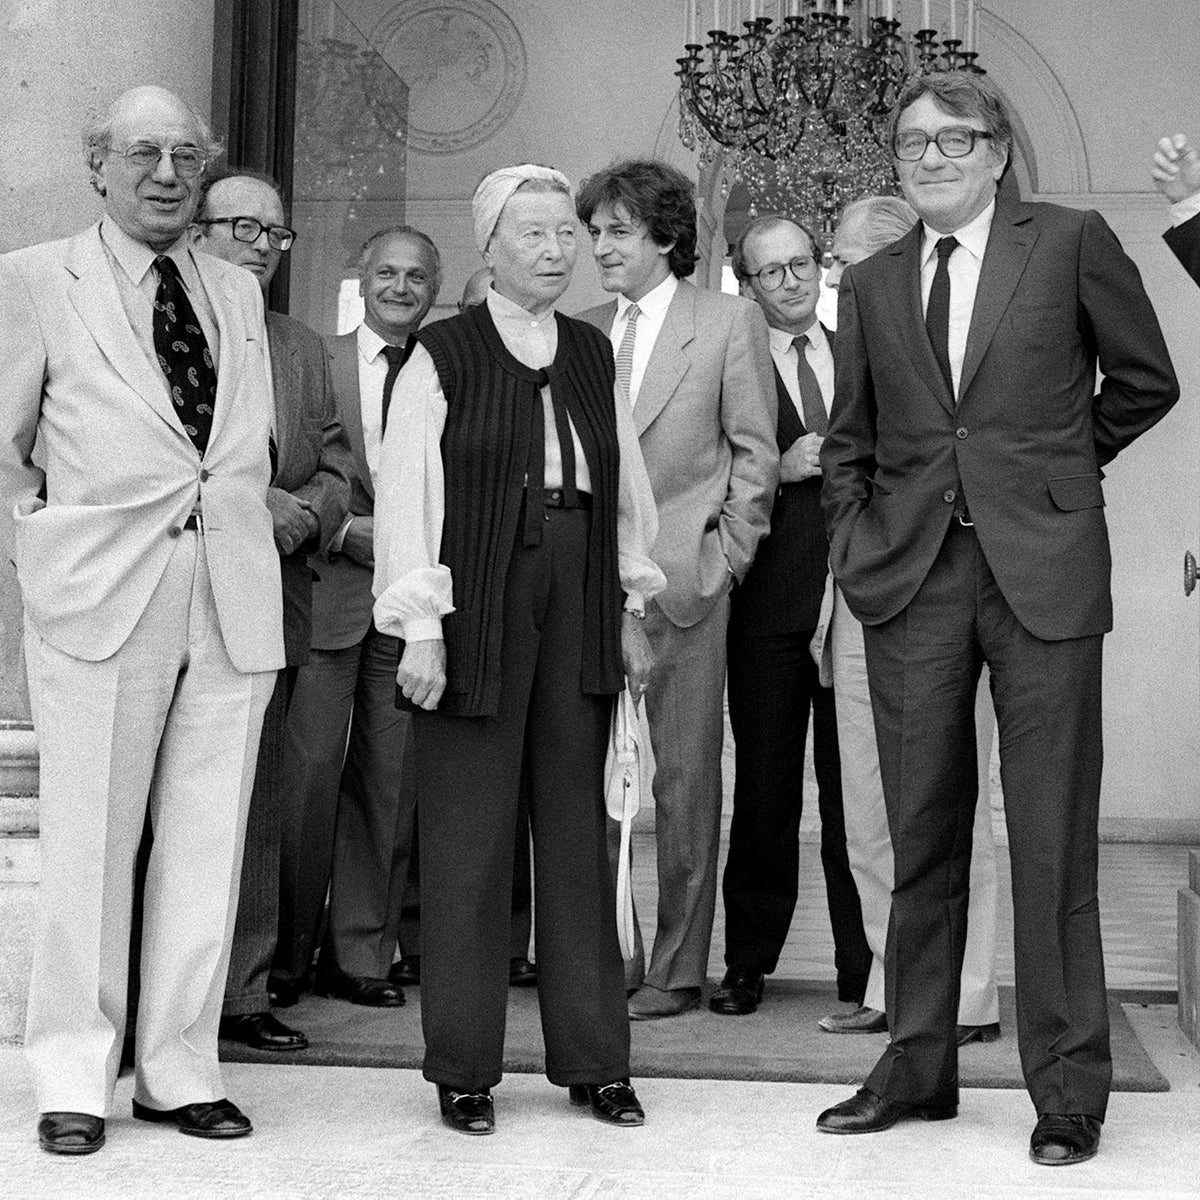 French intellectuals Maxime Rodinson, Simone de Beauvoir, Claude Lanzmann, Regis Debray, Pierre Nora and Alain Finkielkraut pose at the Elysee palace, September 14, 1982.